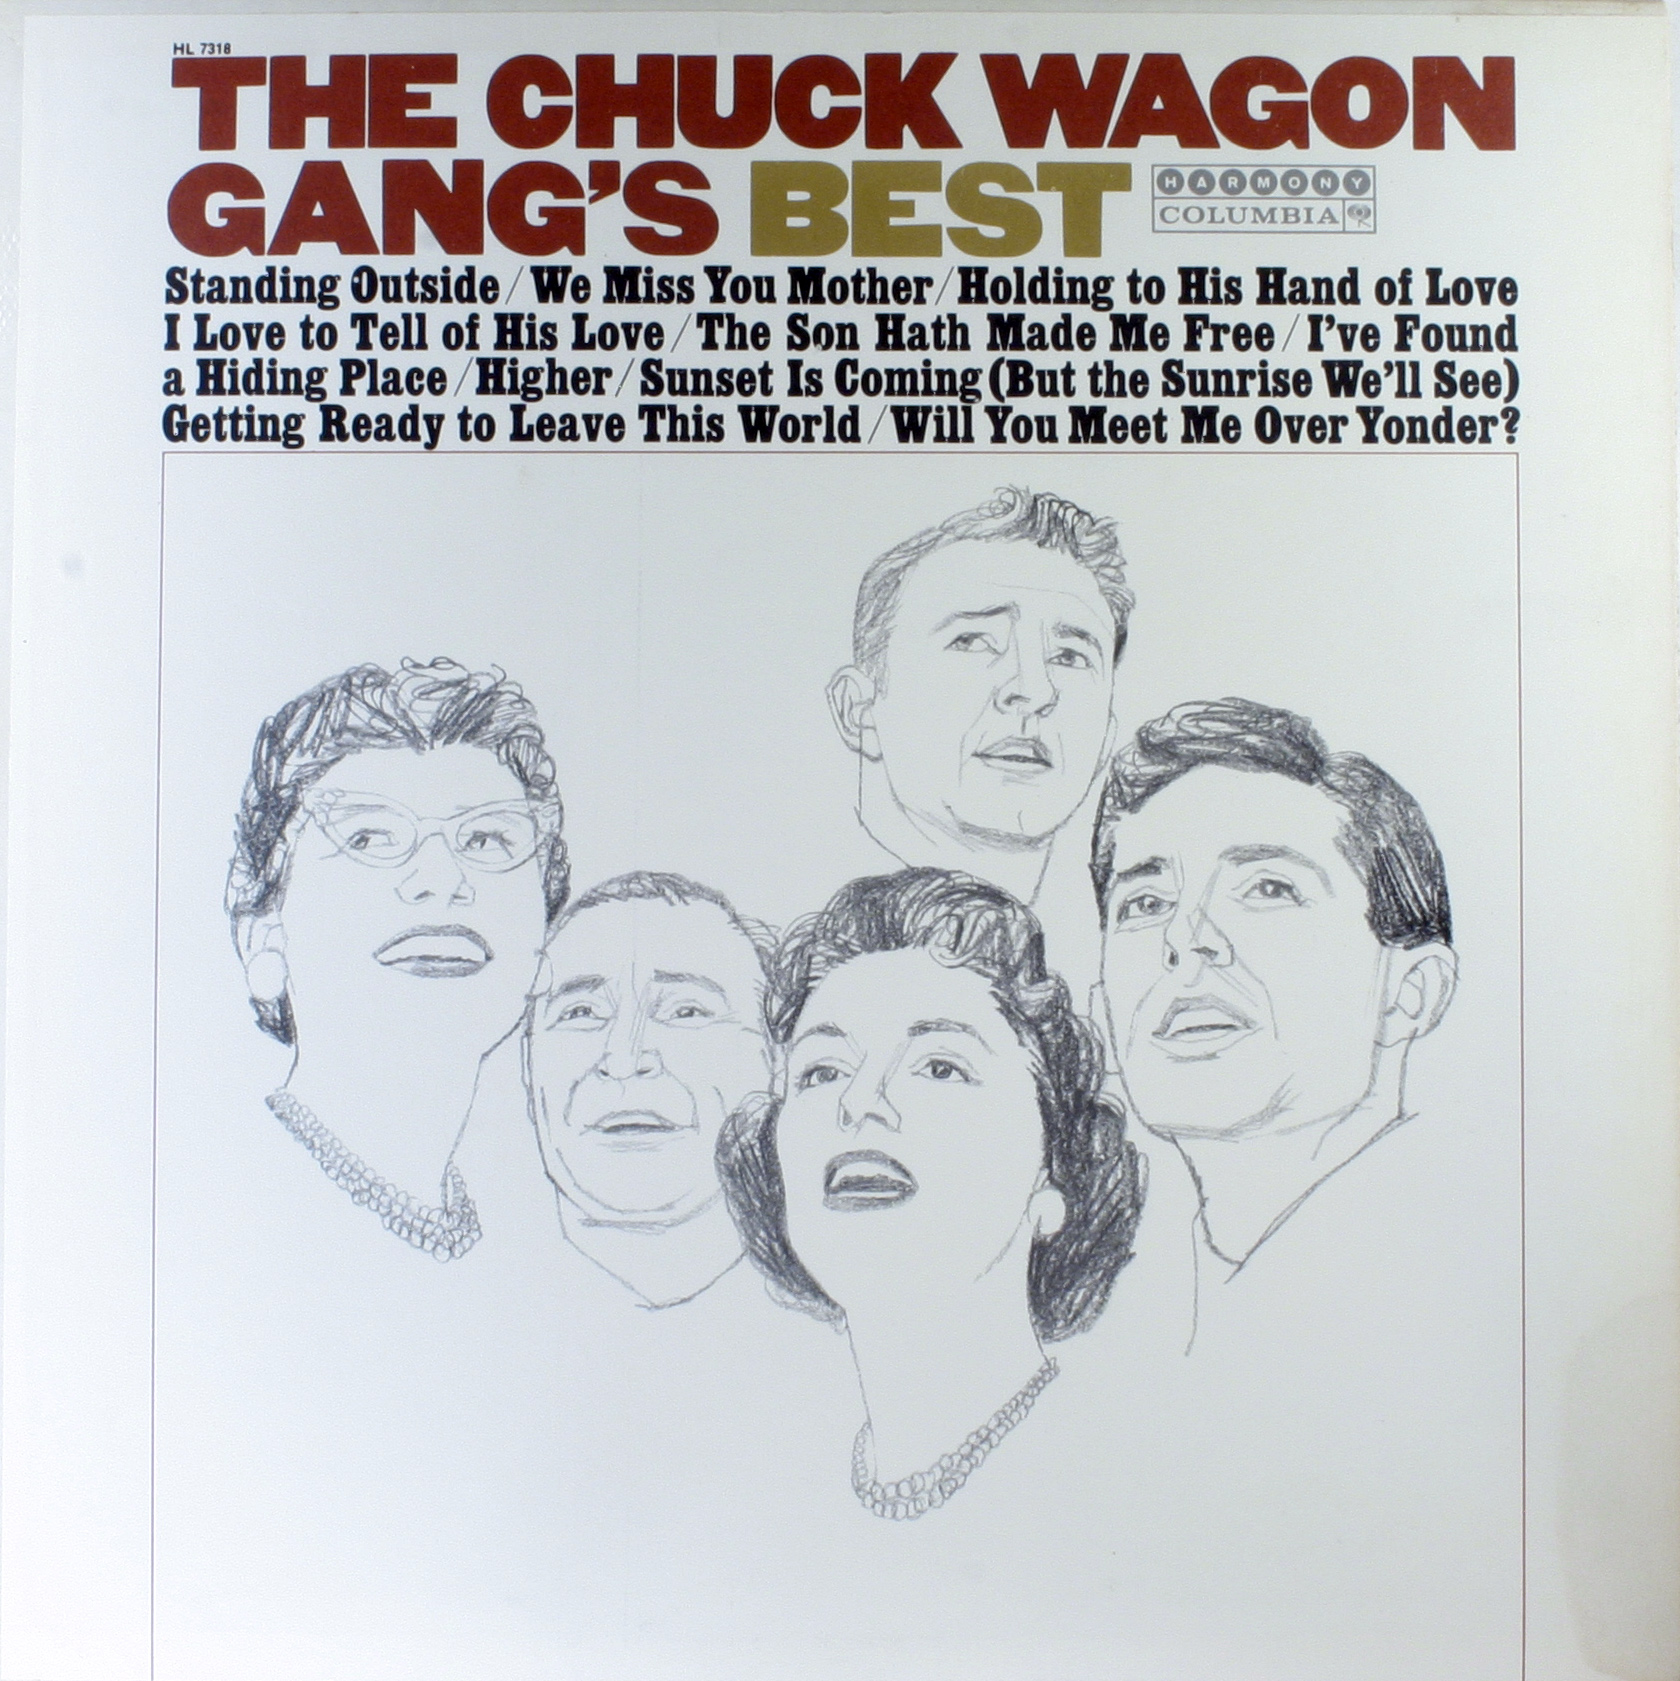 Chuck Wagon Gang - The Chuck Wagon Gang's Best